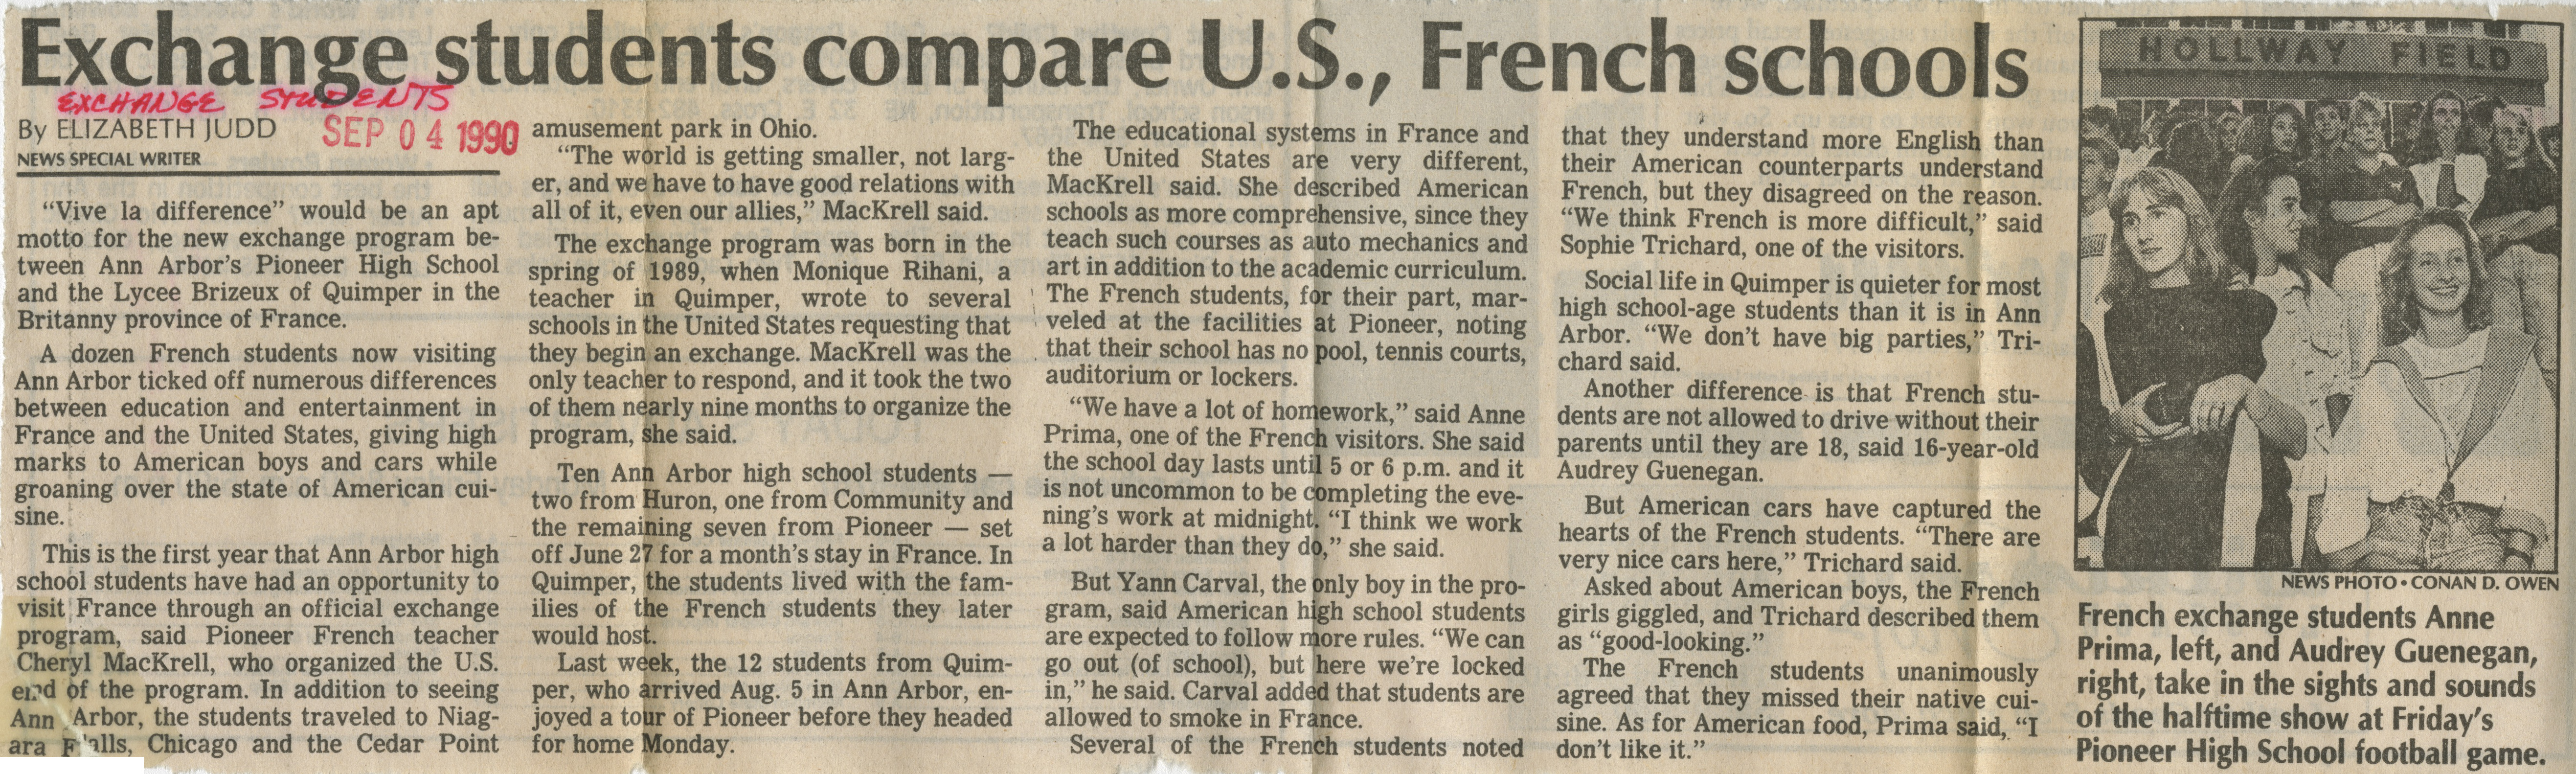 Exchange Students Compare U.S., French Schools image